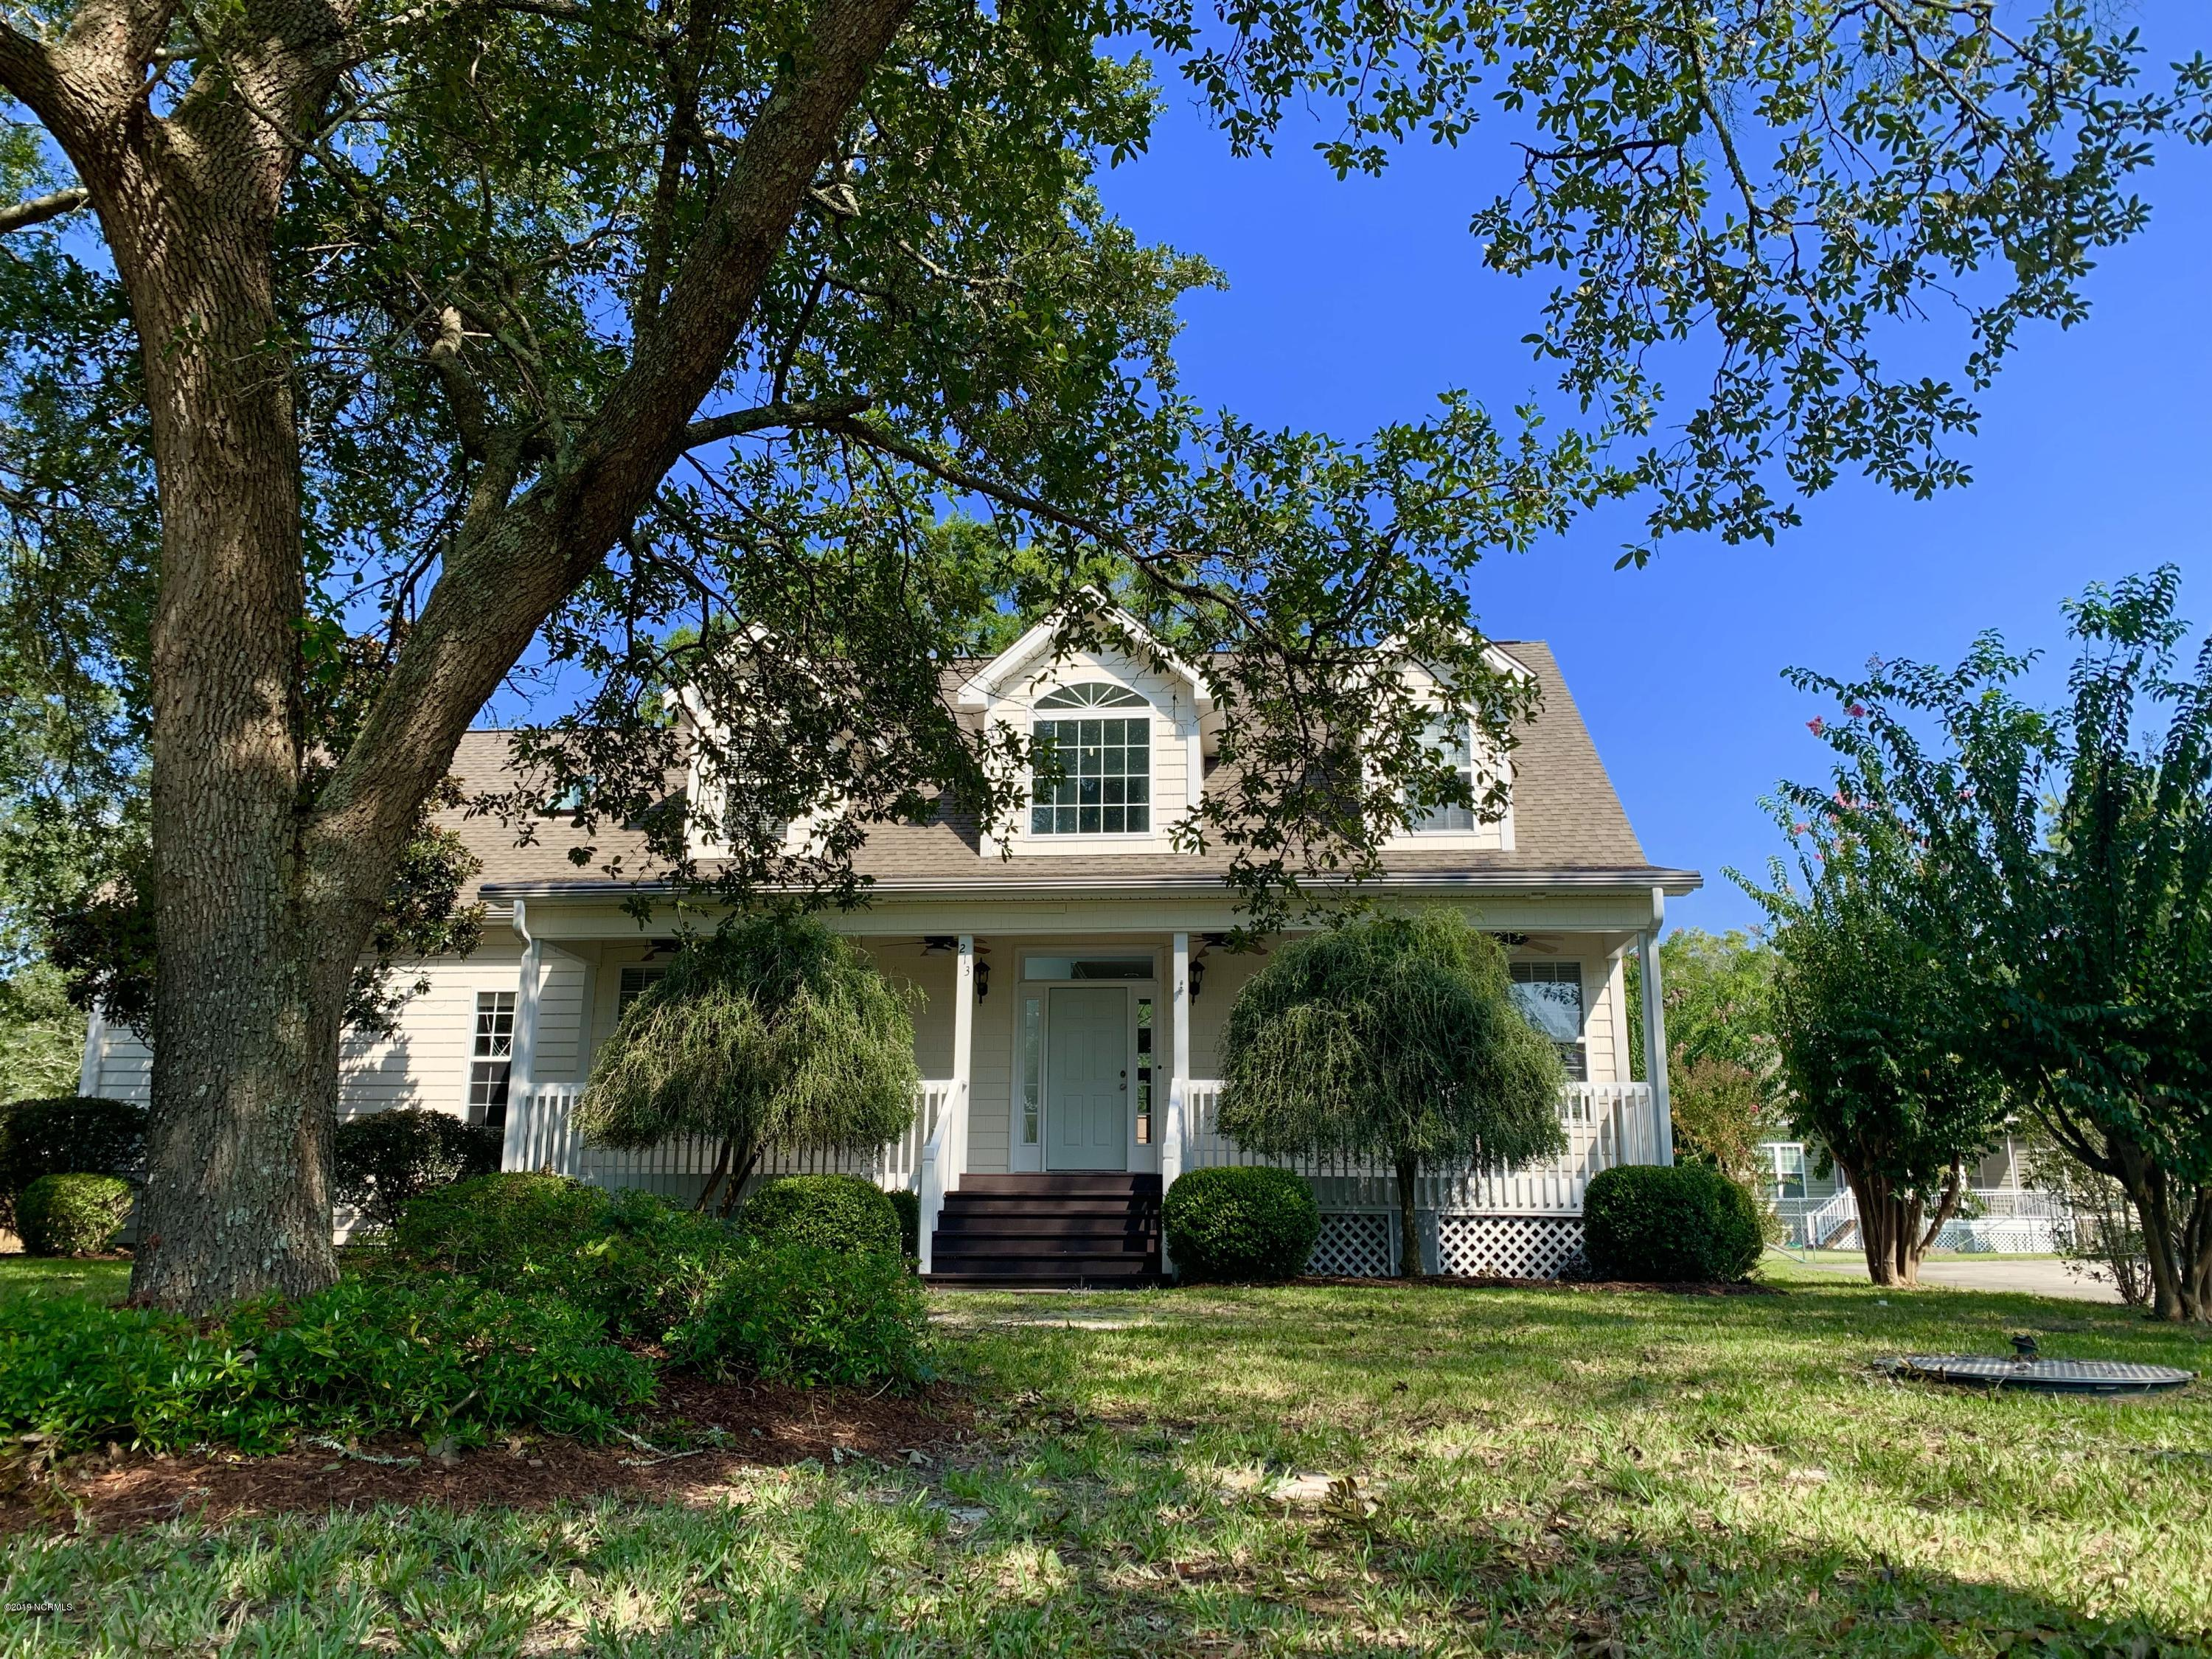 213 Shoreline Drive Sunset Beach, NC 28468